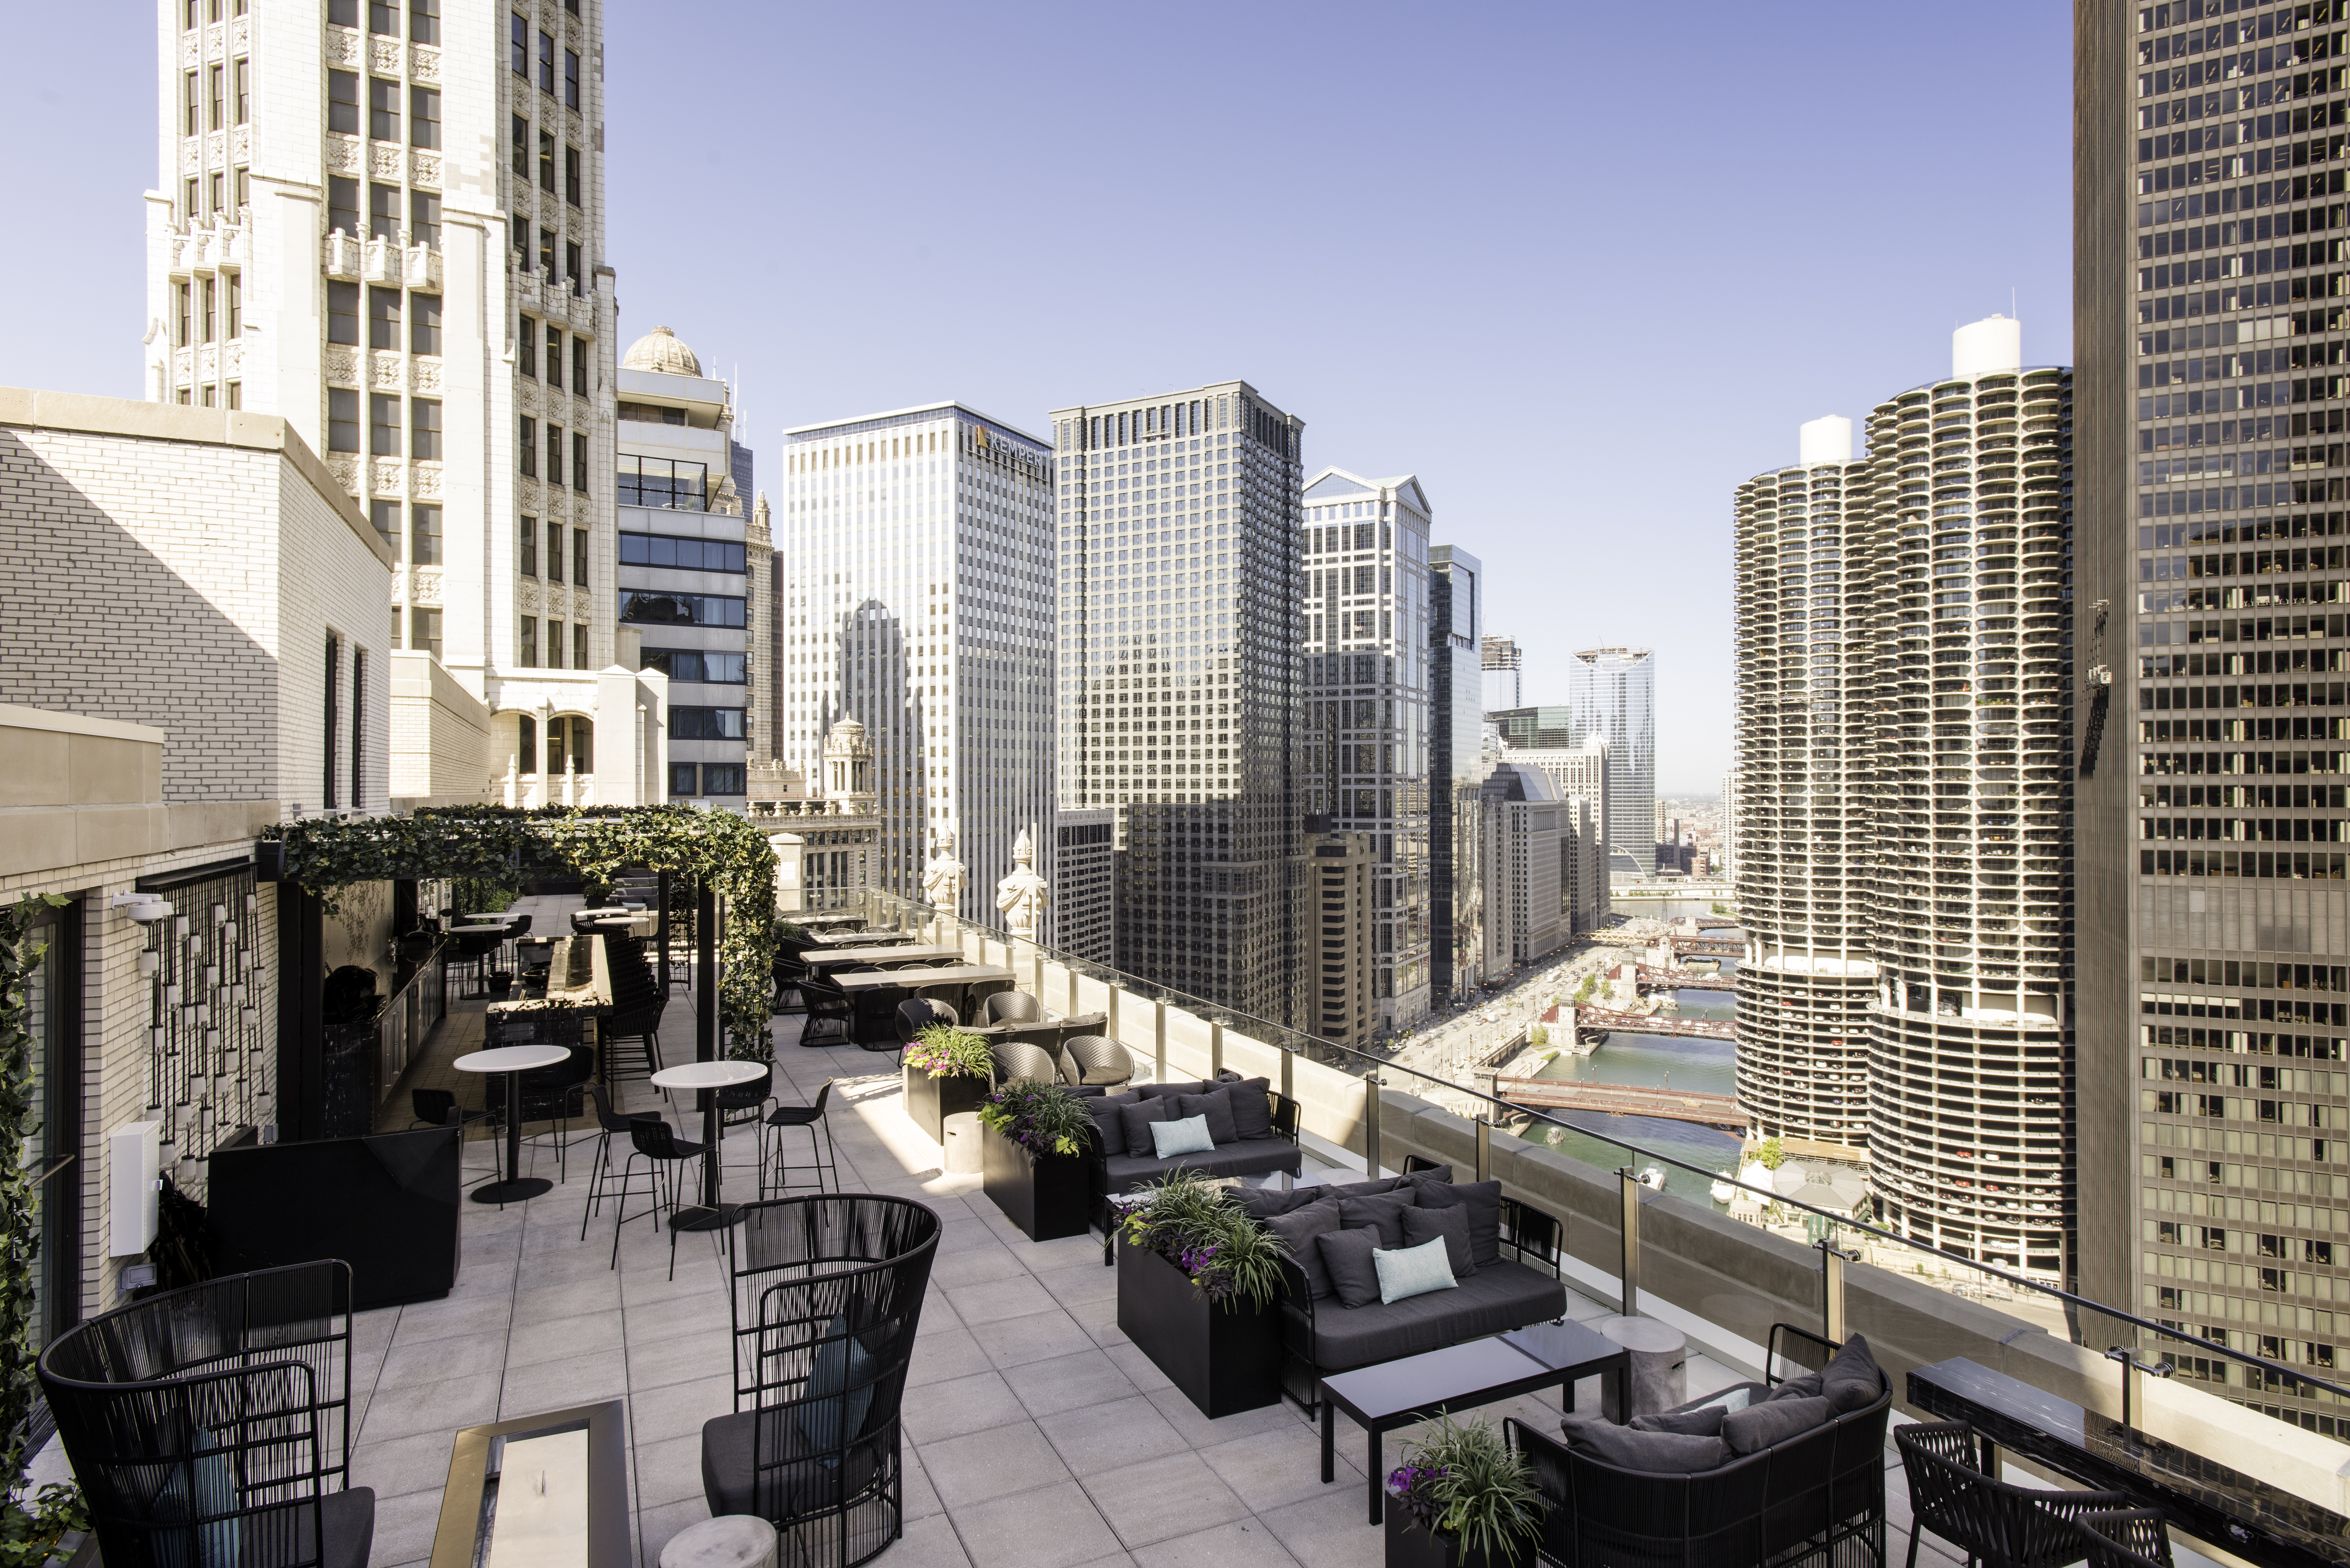 LH Tri-Level Rooftop - LondonHouse Chicago